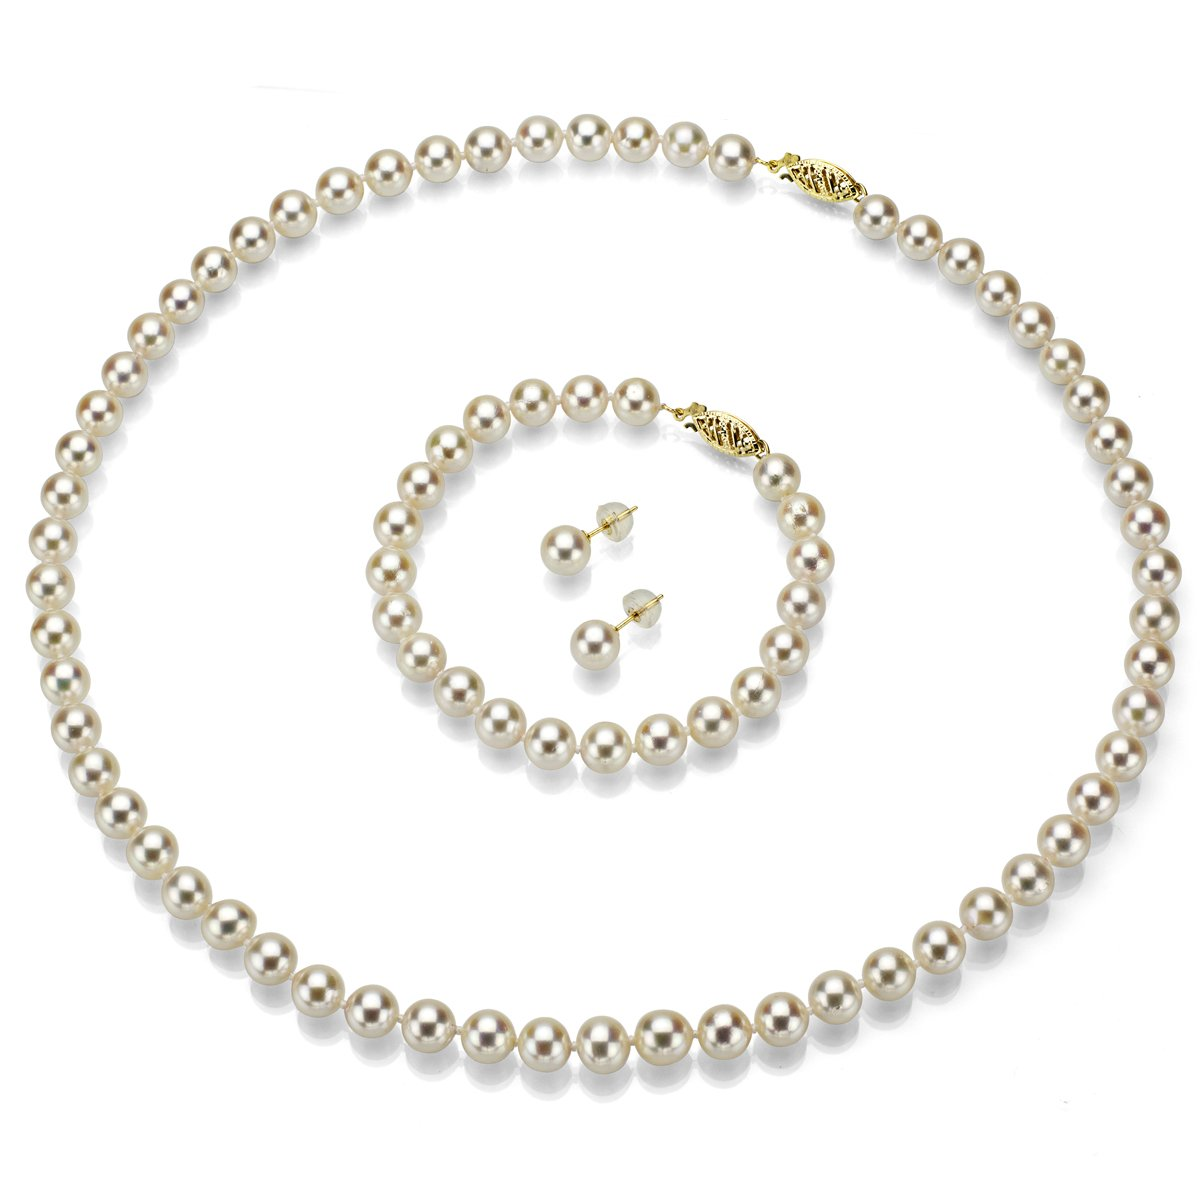 Cultured Japanese Akoya Pearl Necklace White Pearl Bracelet and 14K Yellow Gold Stud Earrings Set